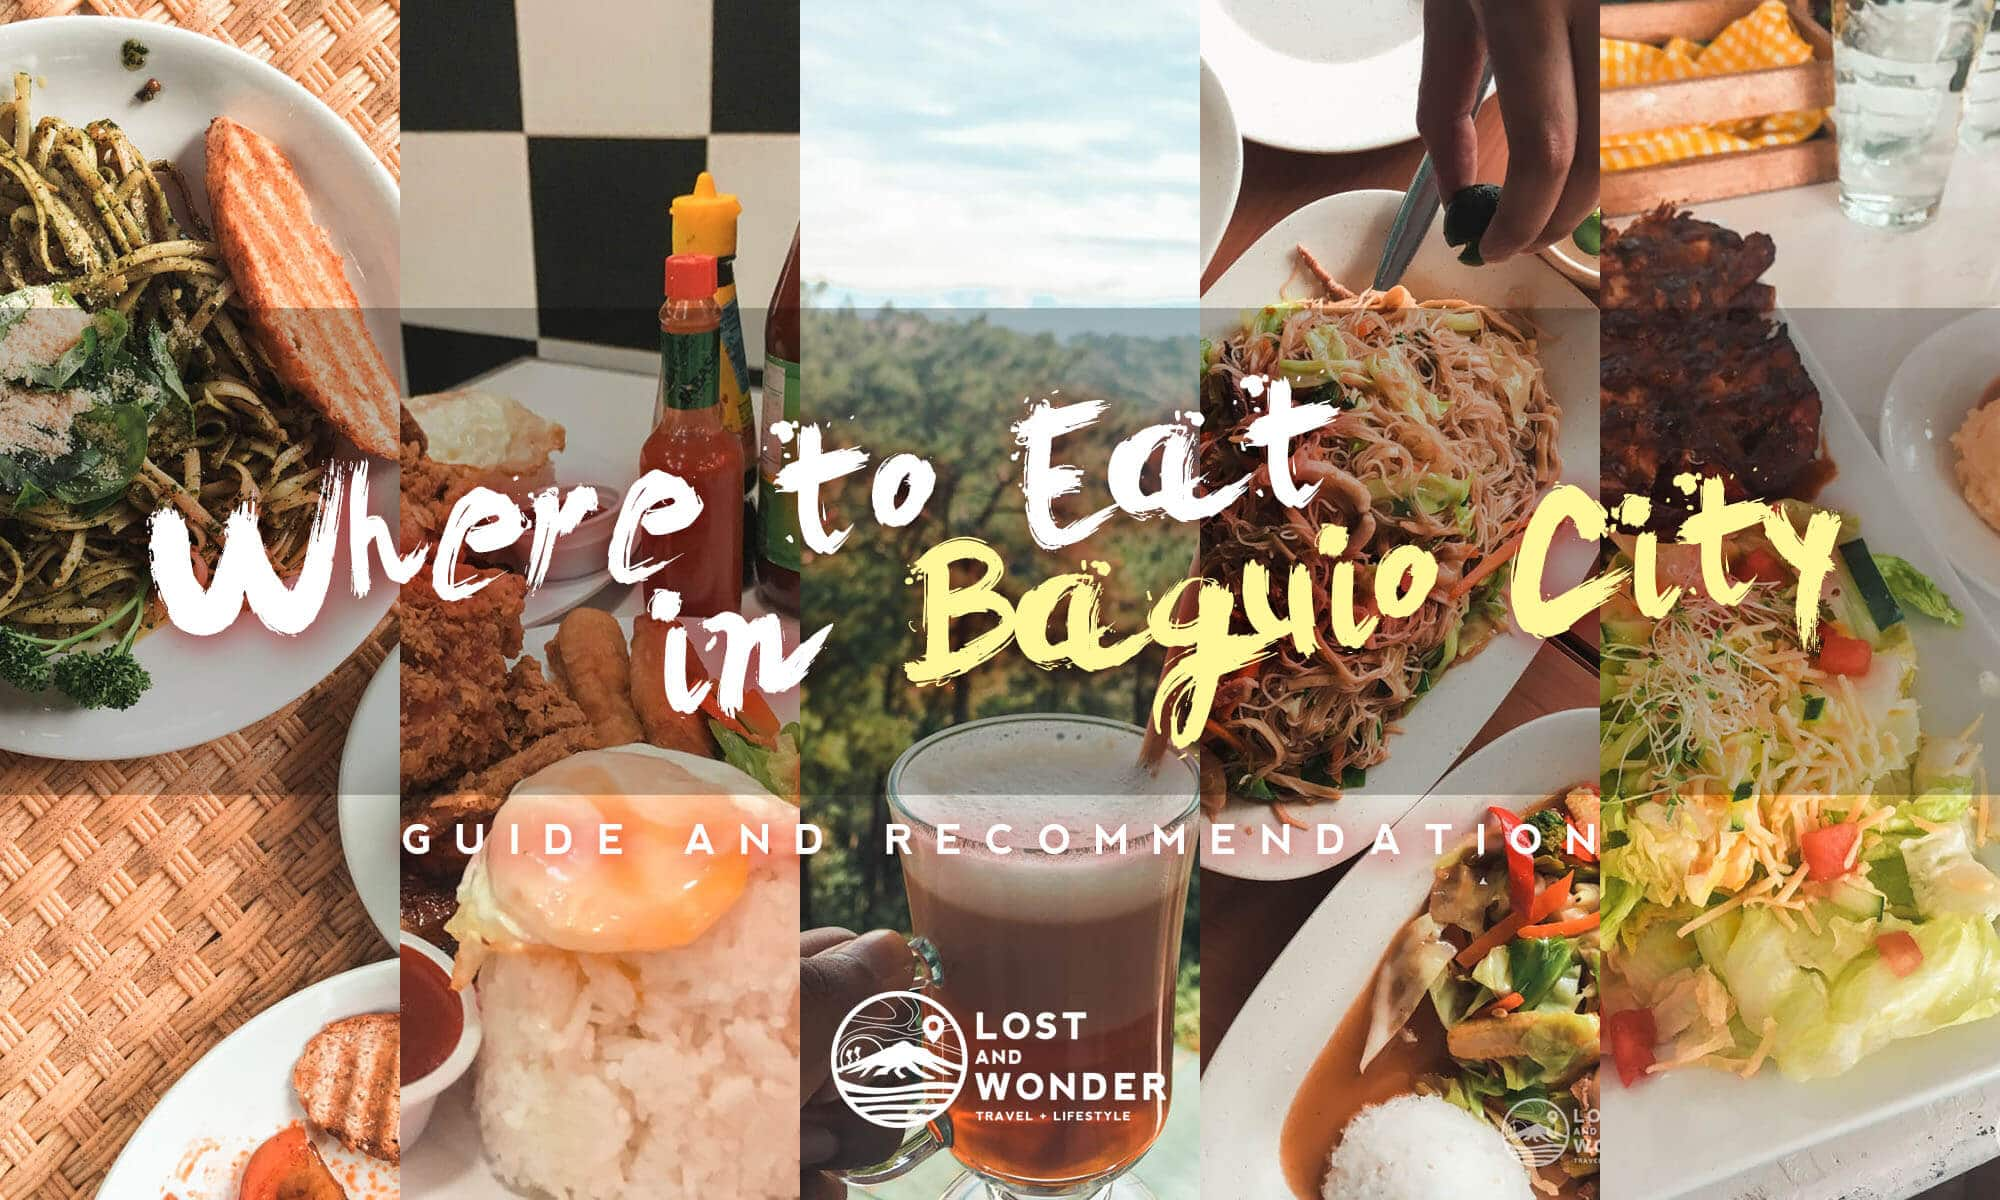 Photo Where to Eat in Baguio City